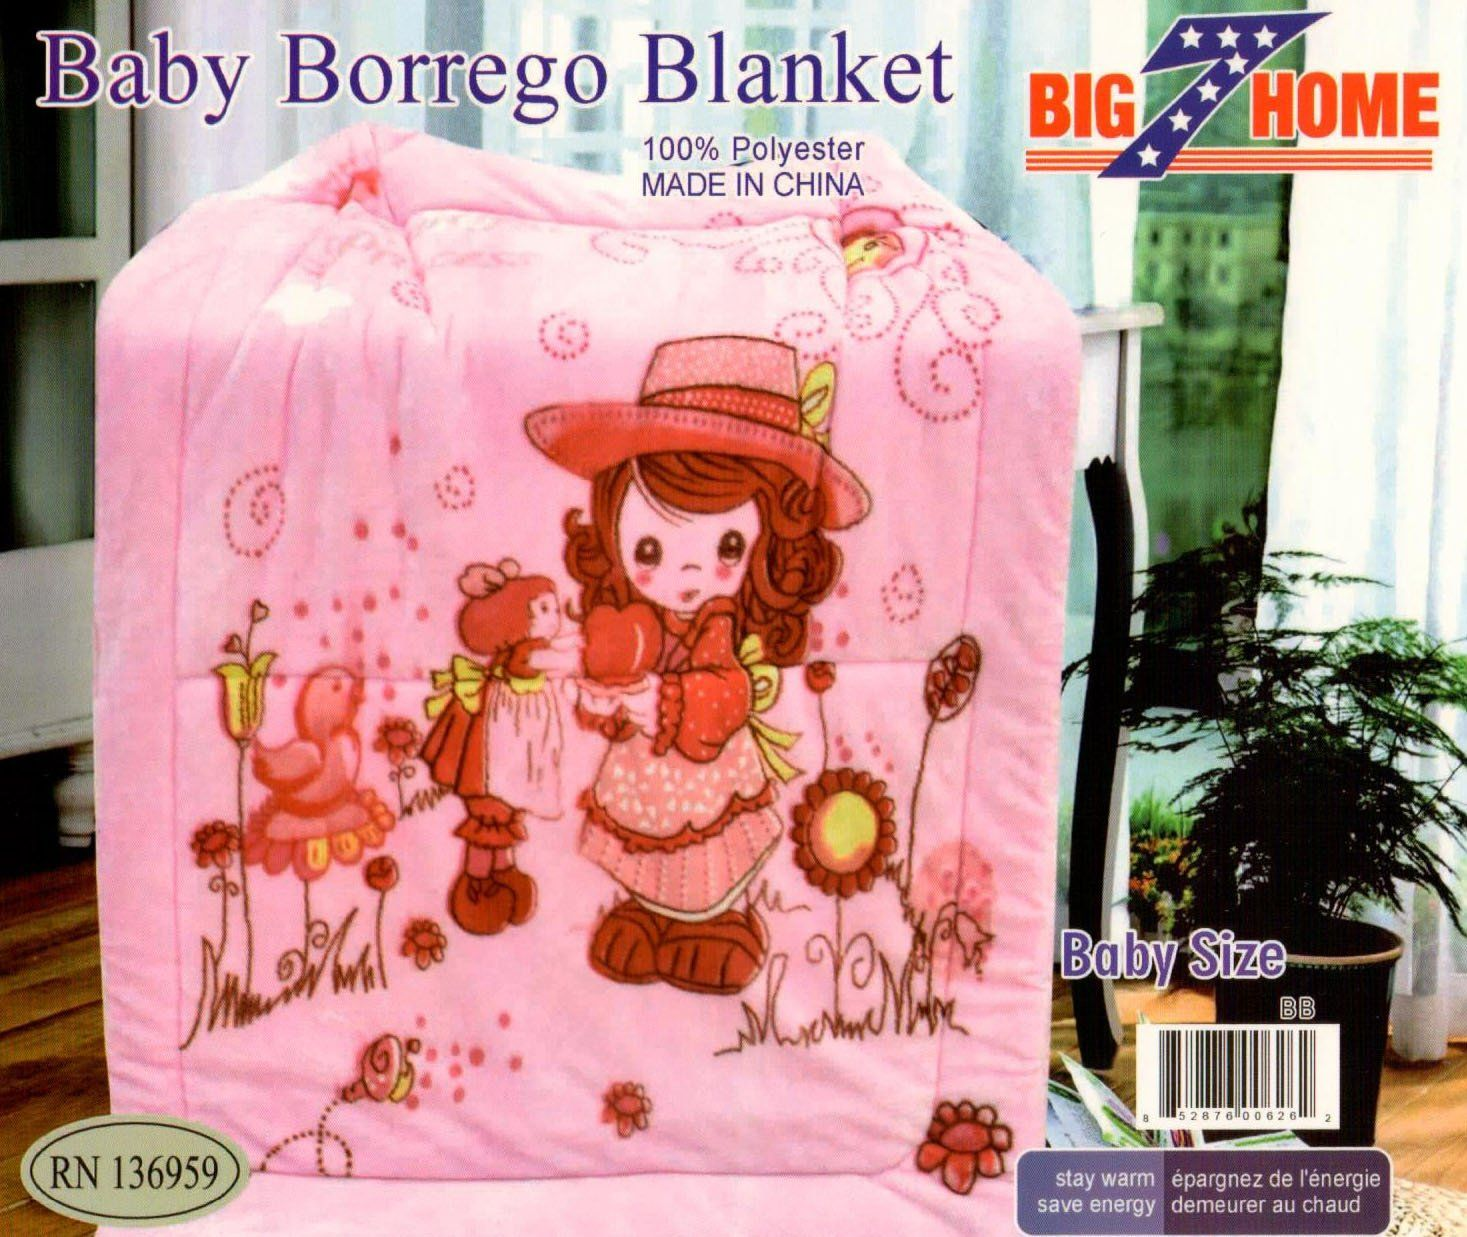 Big 7 Home Baby Sherpa Reversible Blanket, Double Layered W/ Fleece, Breathable, Super Soft, Comfortable (Pink little girl)